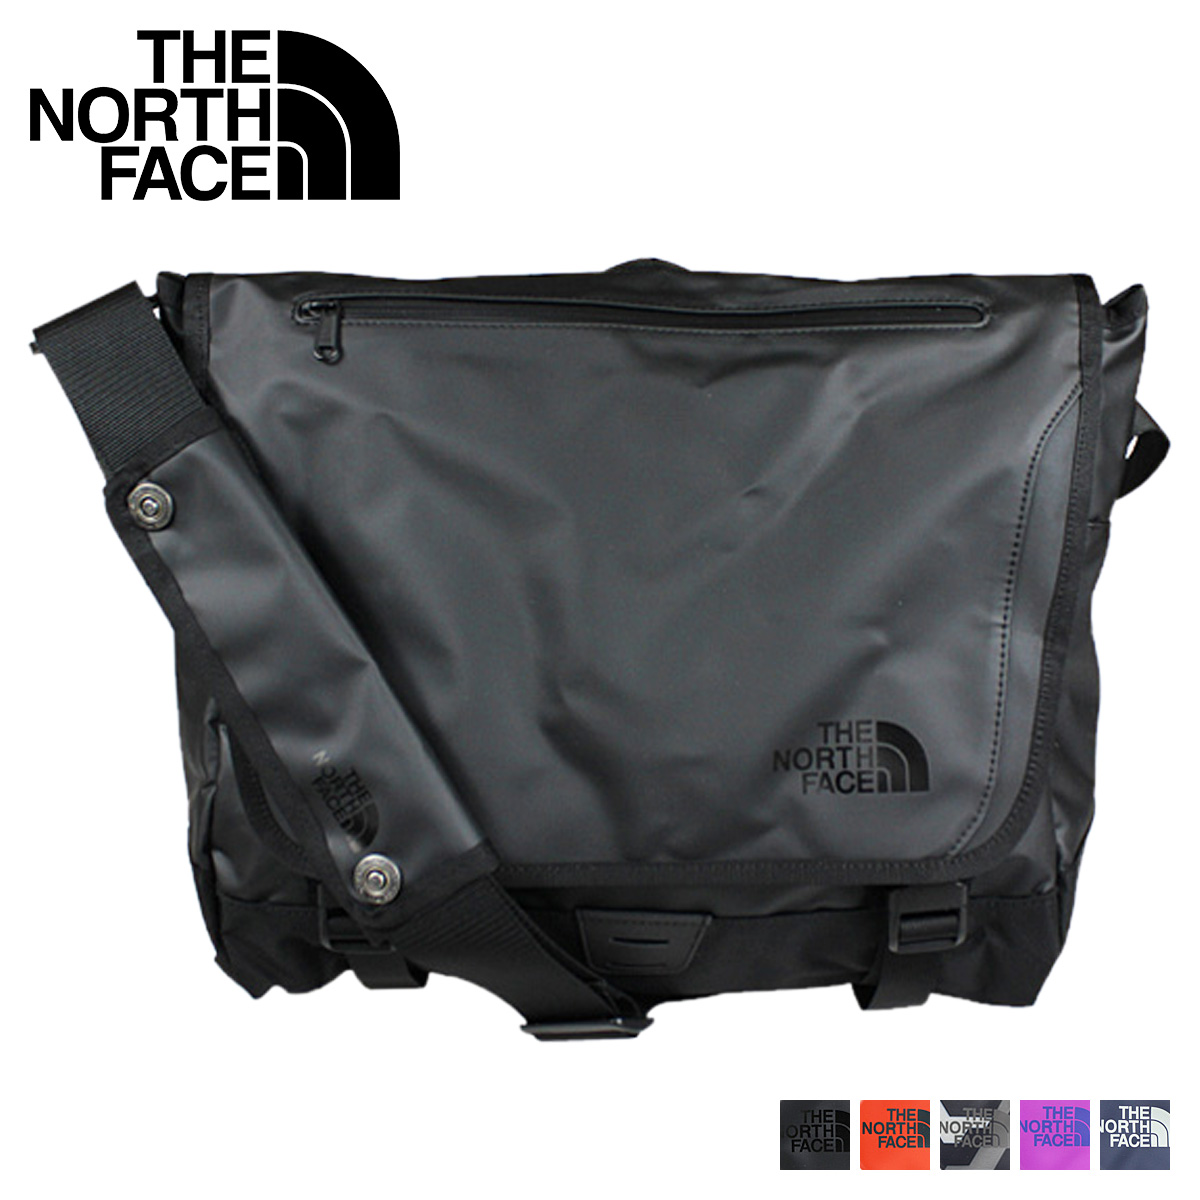 783f817064b3 THE NORTH FACE   ☆ BASE CAMP MESSENGER MEDIUM ☆ Messenger bags   STYLE  A7KU